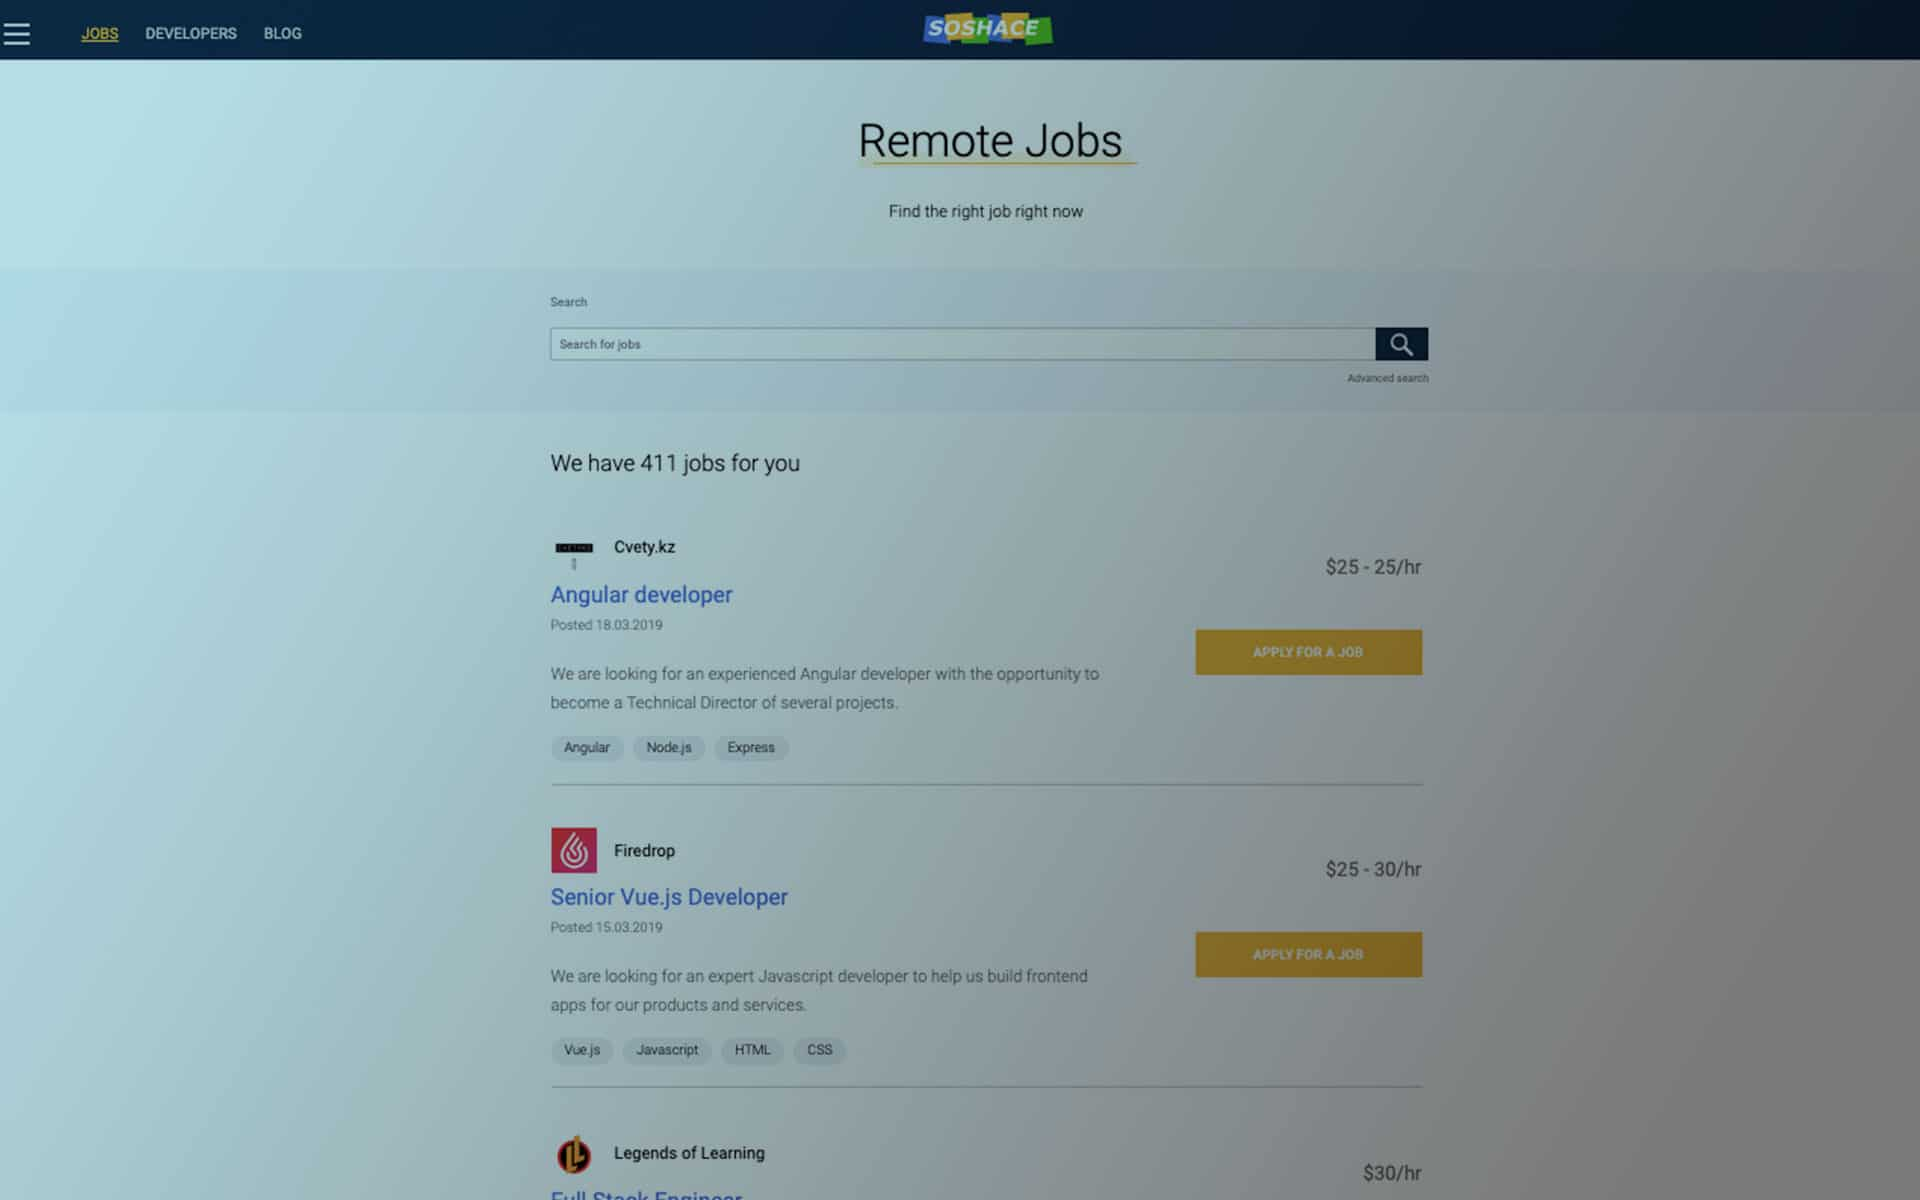 Sohace-Review-Developer-Remote-Jobs